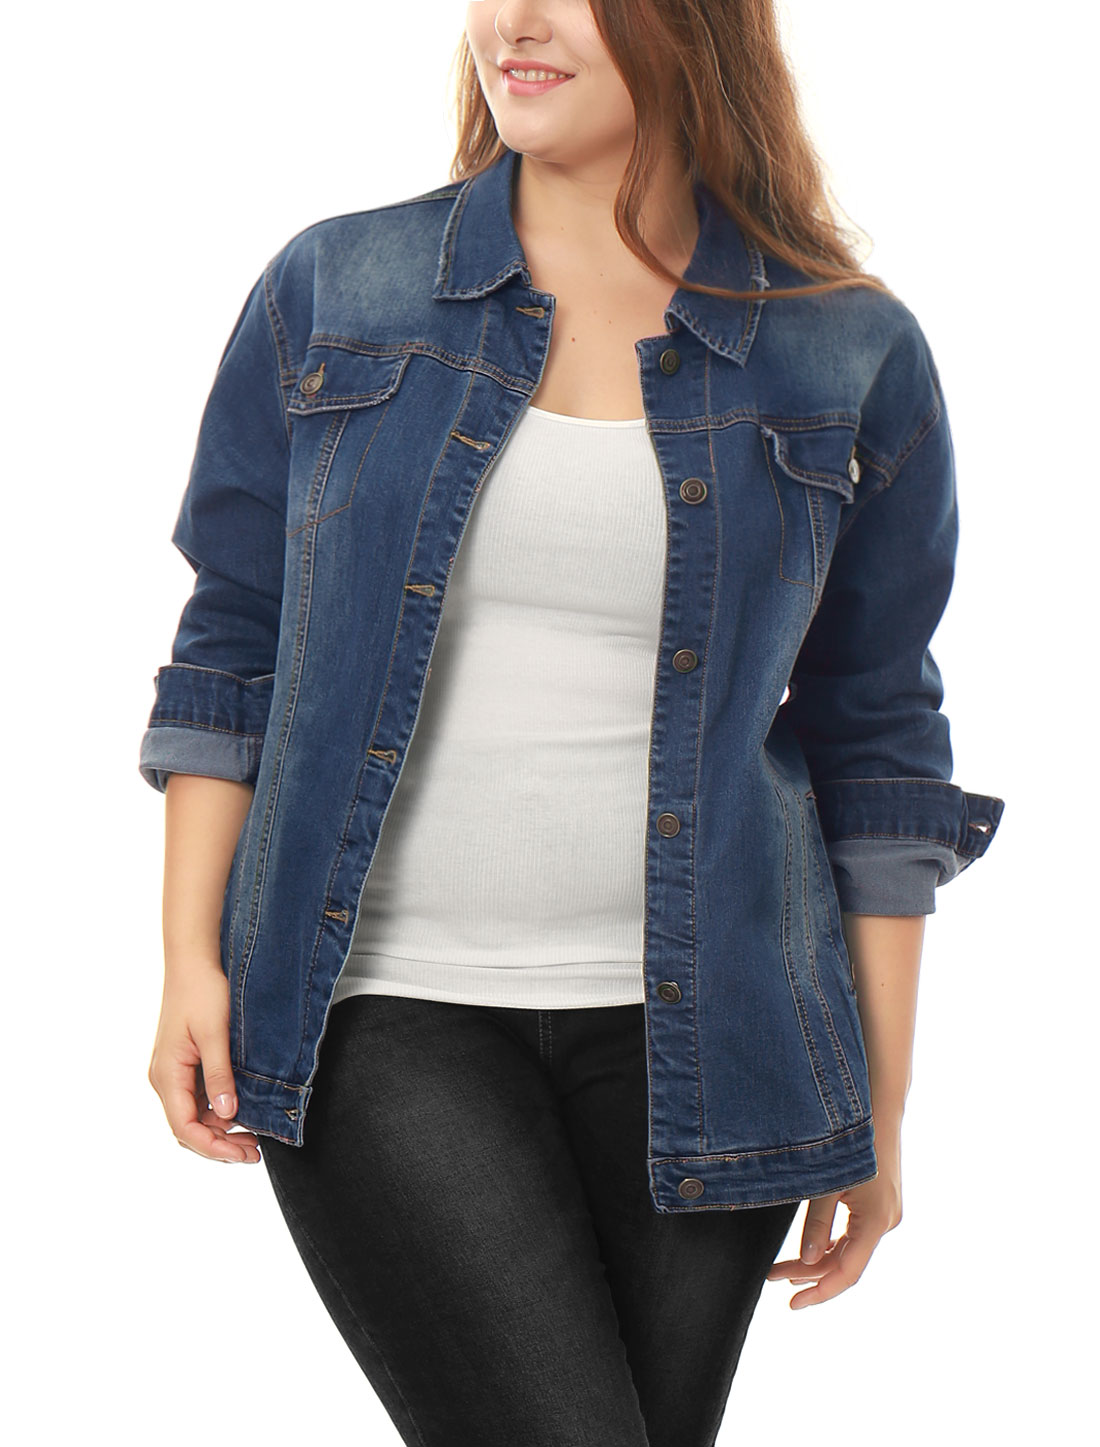 Women Plus Size Stitching Button Front Washed Denim Jacket Blue 2X